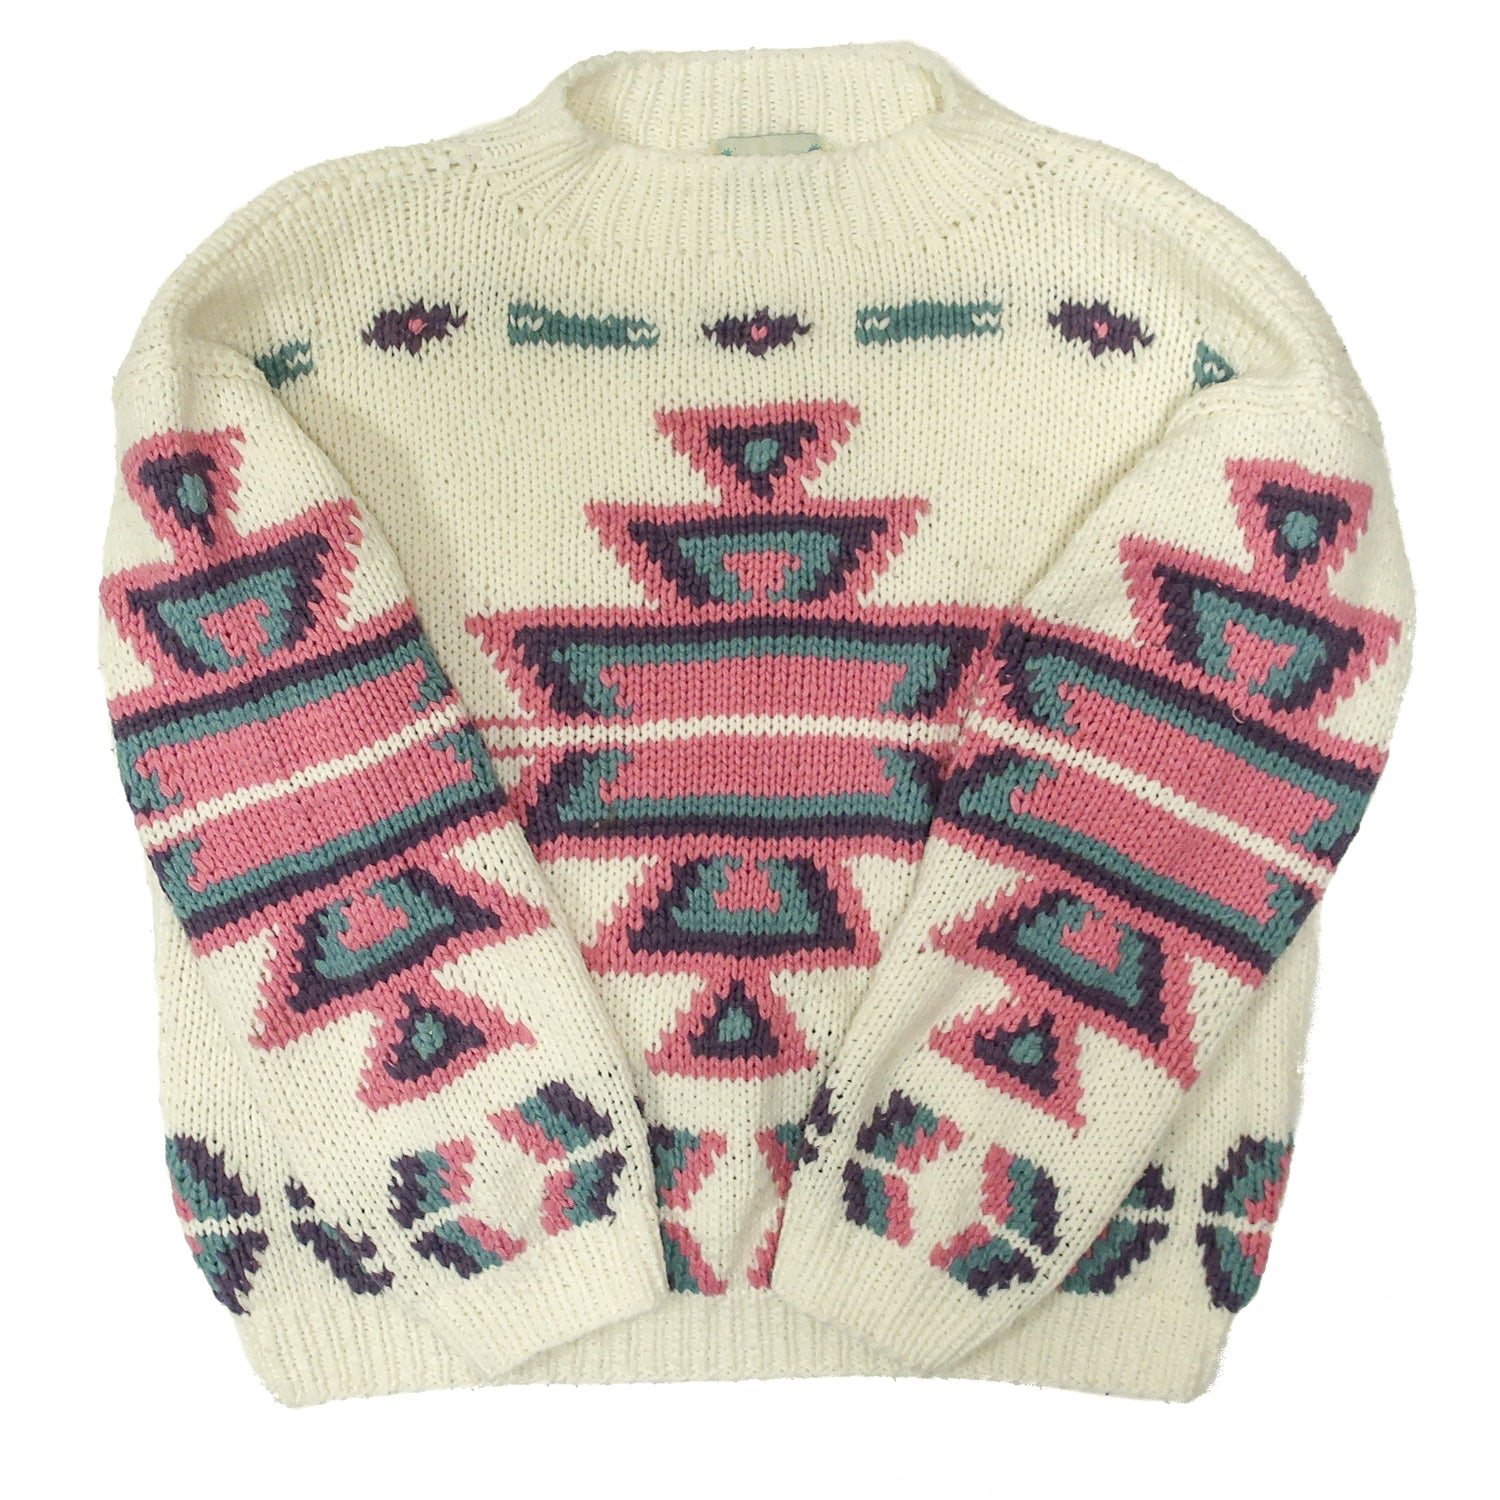 Second Room Vintage Clothing. Vintage white 90s Karuba sweater with southwestern style pattern in pink, purple and green, with a small mock turtleneck. Free North American shipping on all orders.